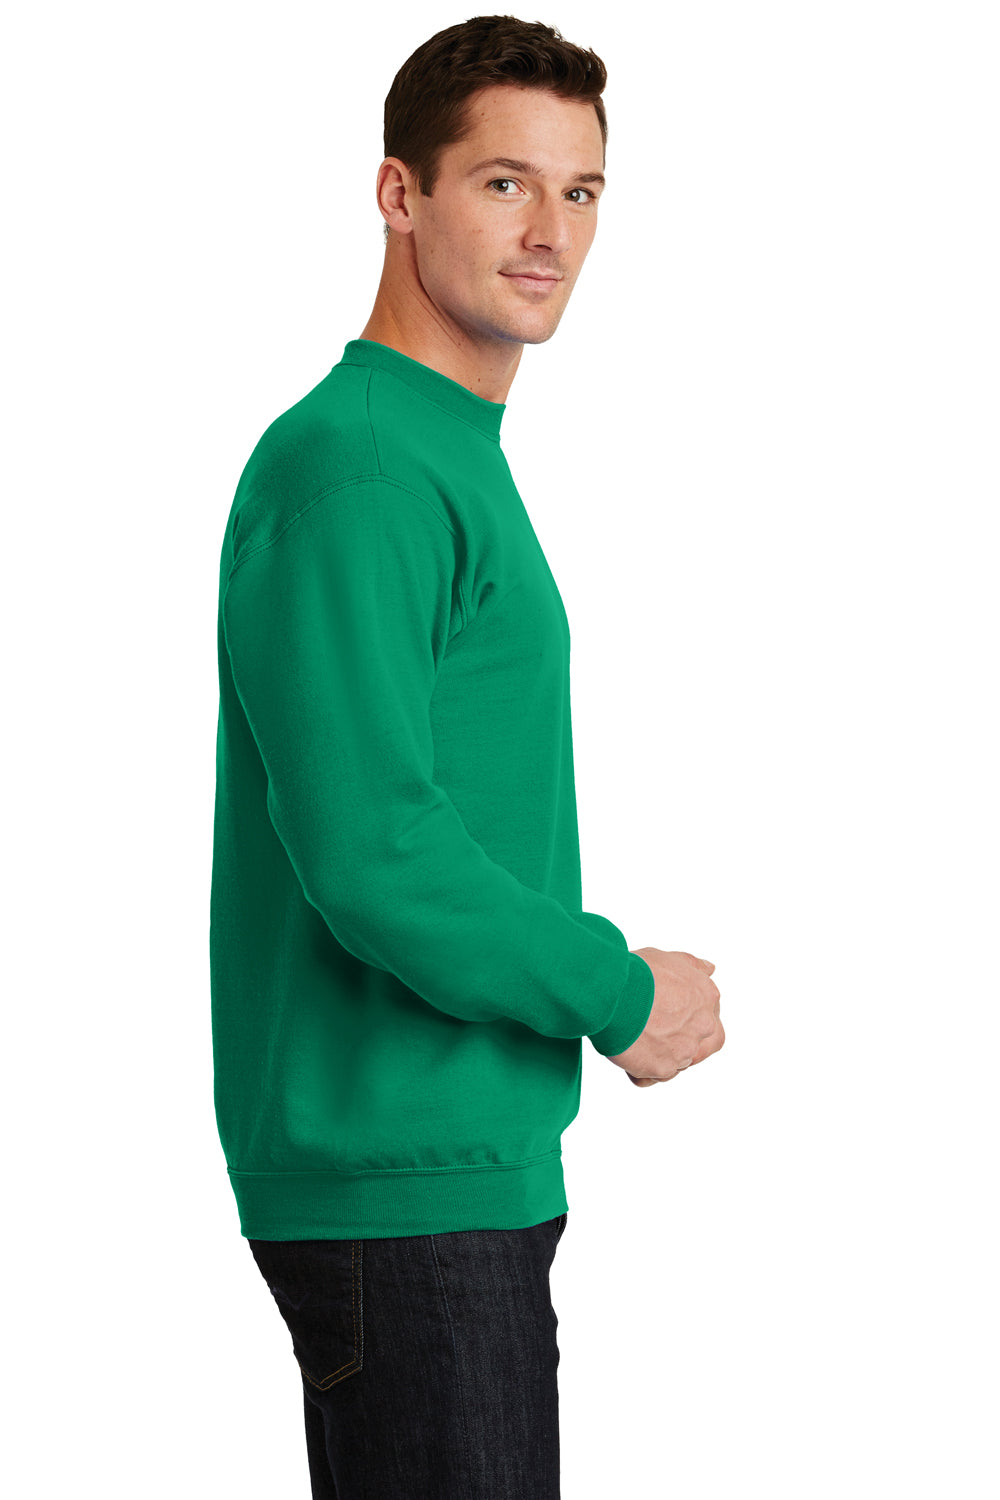 Port & Company PC78 Mens Core Fleece Crewneck Sweatshirt Kelly Green Side